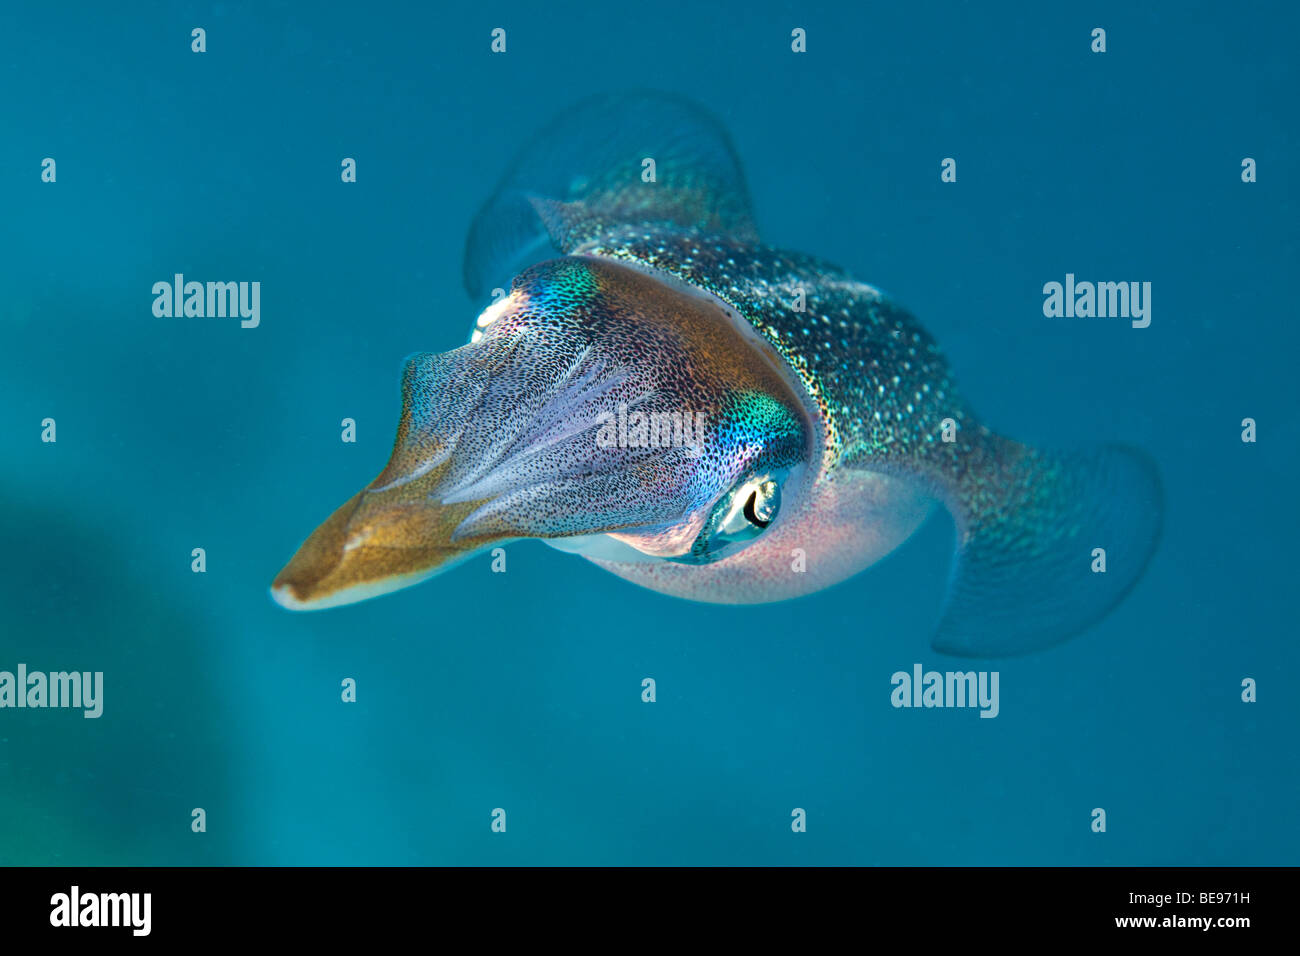 The Caribbean reef squid, Sepioteuthis sepioidea, is commonly observed in shallow near shore water of the Caribbean. - Stock Image